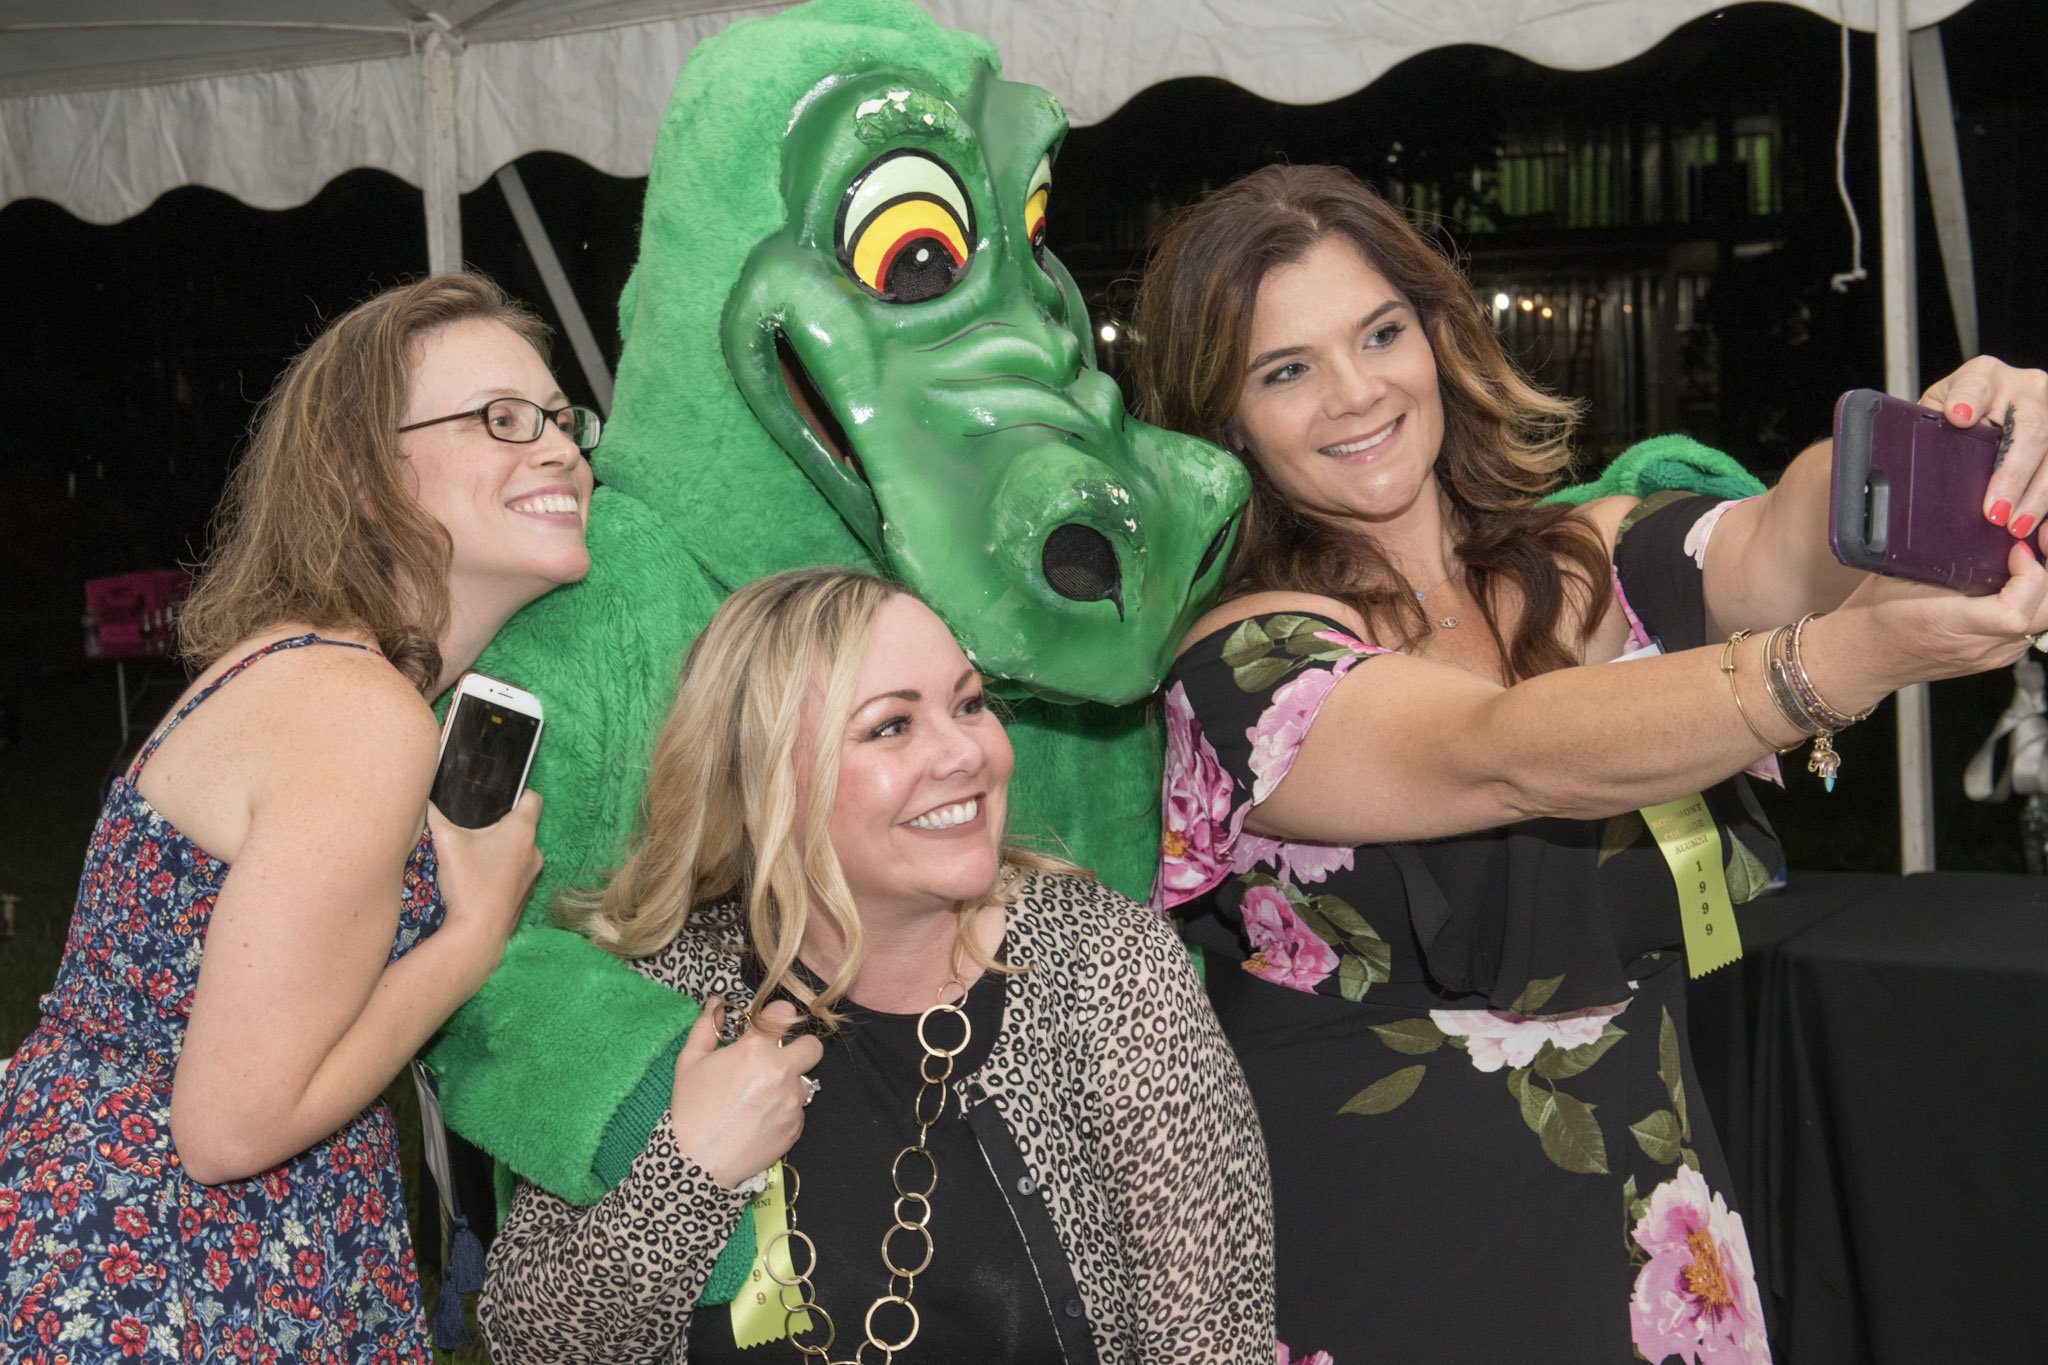 Image of three white women in their thirties at an outdoor event in summer dresses taking a photo with a big green college mascot that looks like a monster.